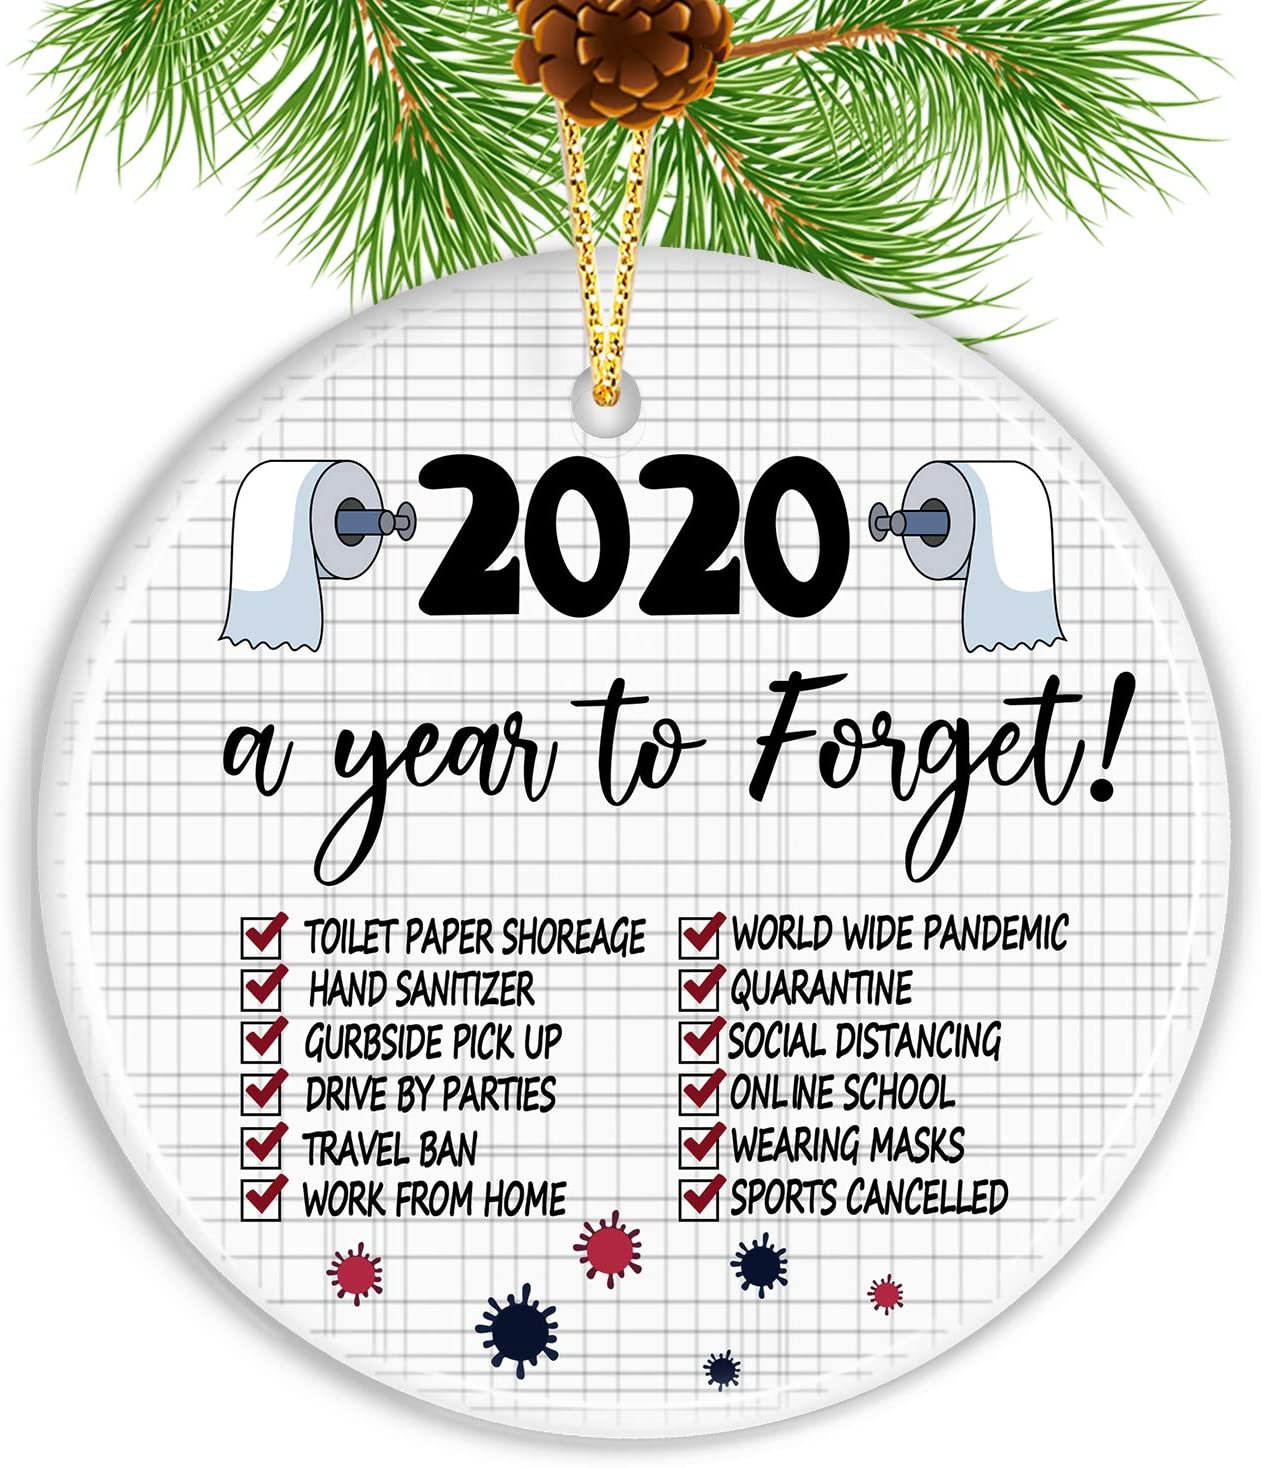 GoGreen Sprouter Christmas Ornaments, 2020 Christmas Ornament Quarantine Christmas Ornaments Clearance 2020 Ornament Funny Home Decor - Gifts for Christmas